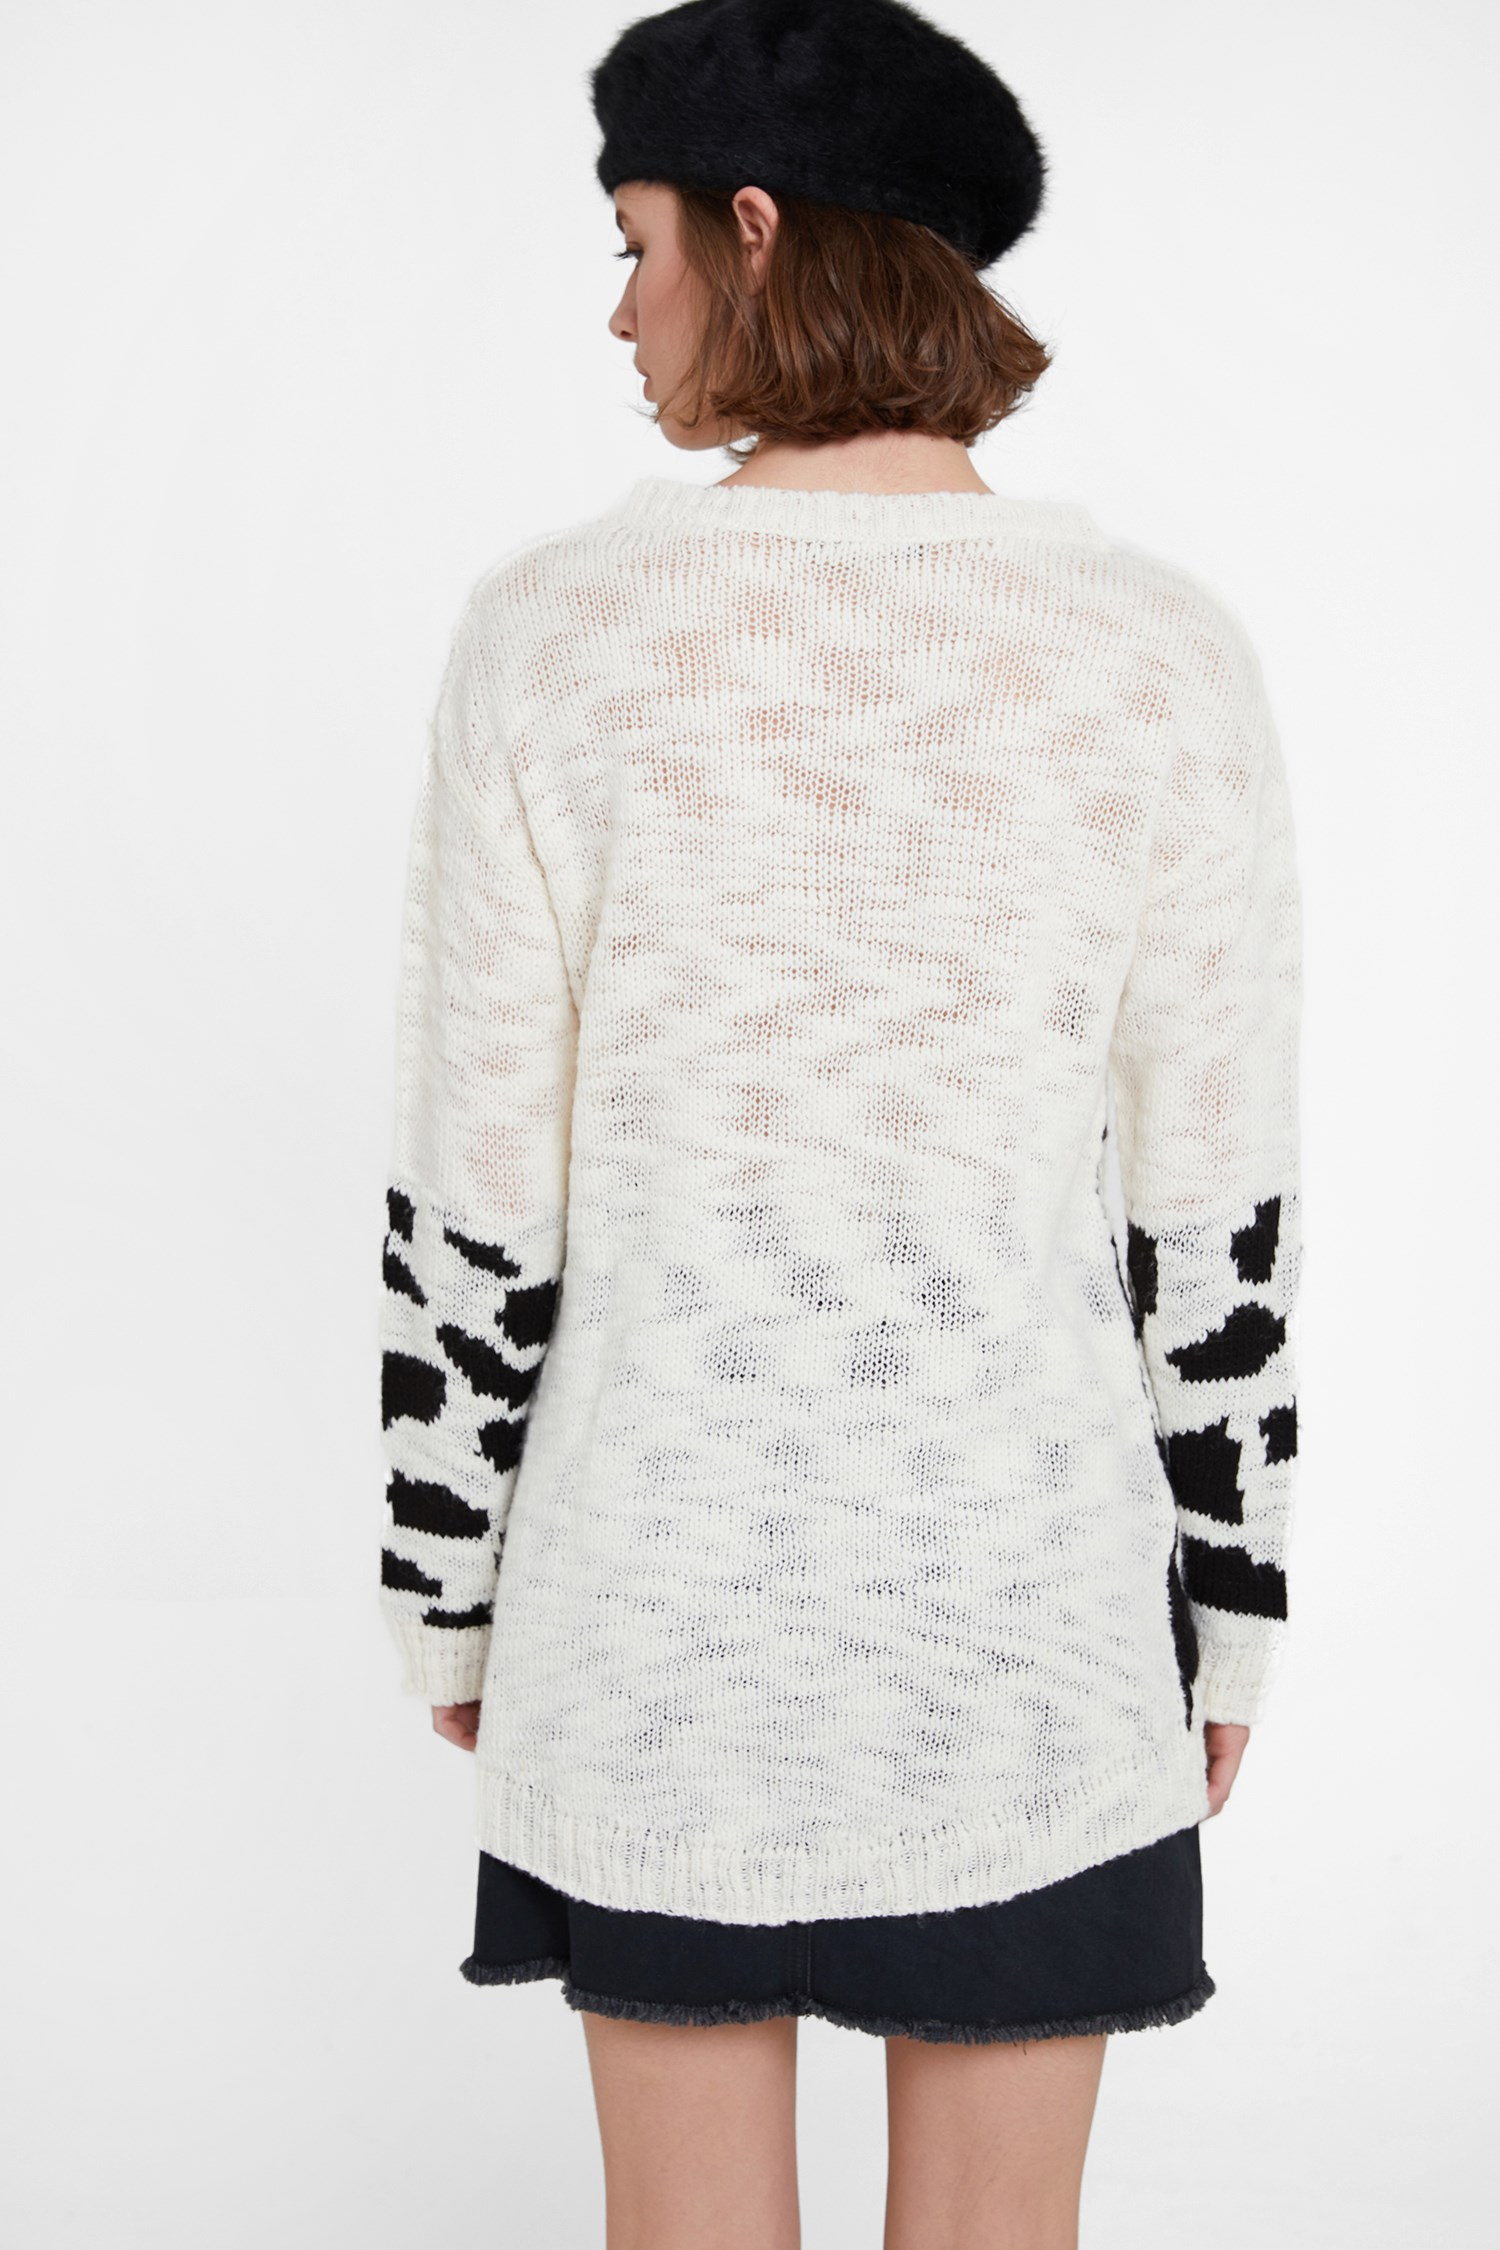 a93bd38c6efc0 Cream Patterned Pullover Online Shopping